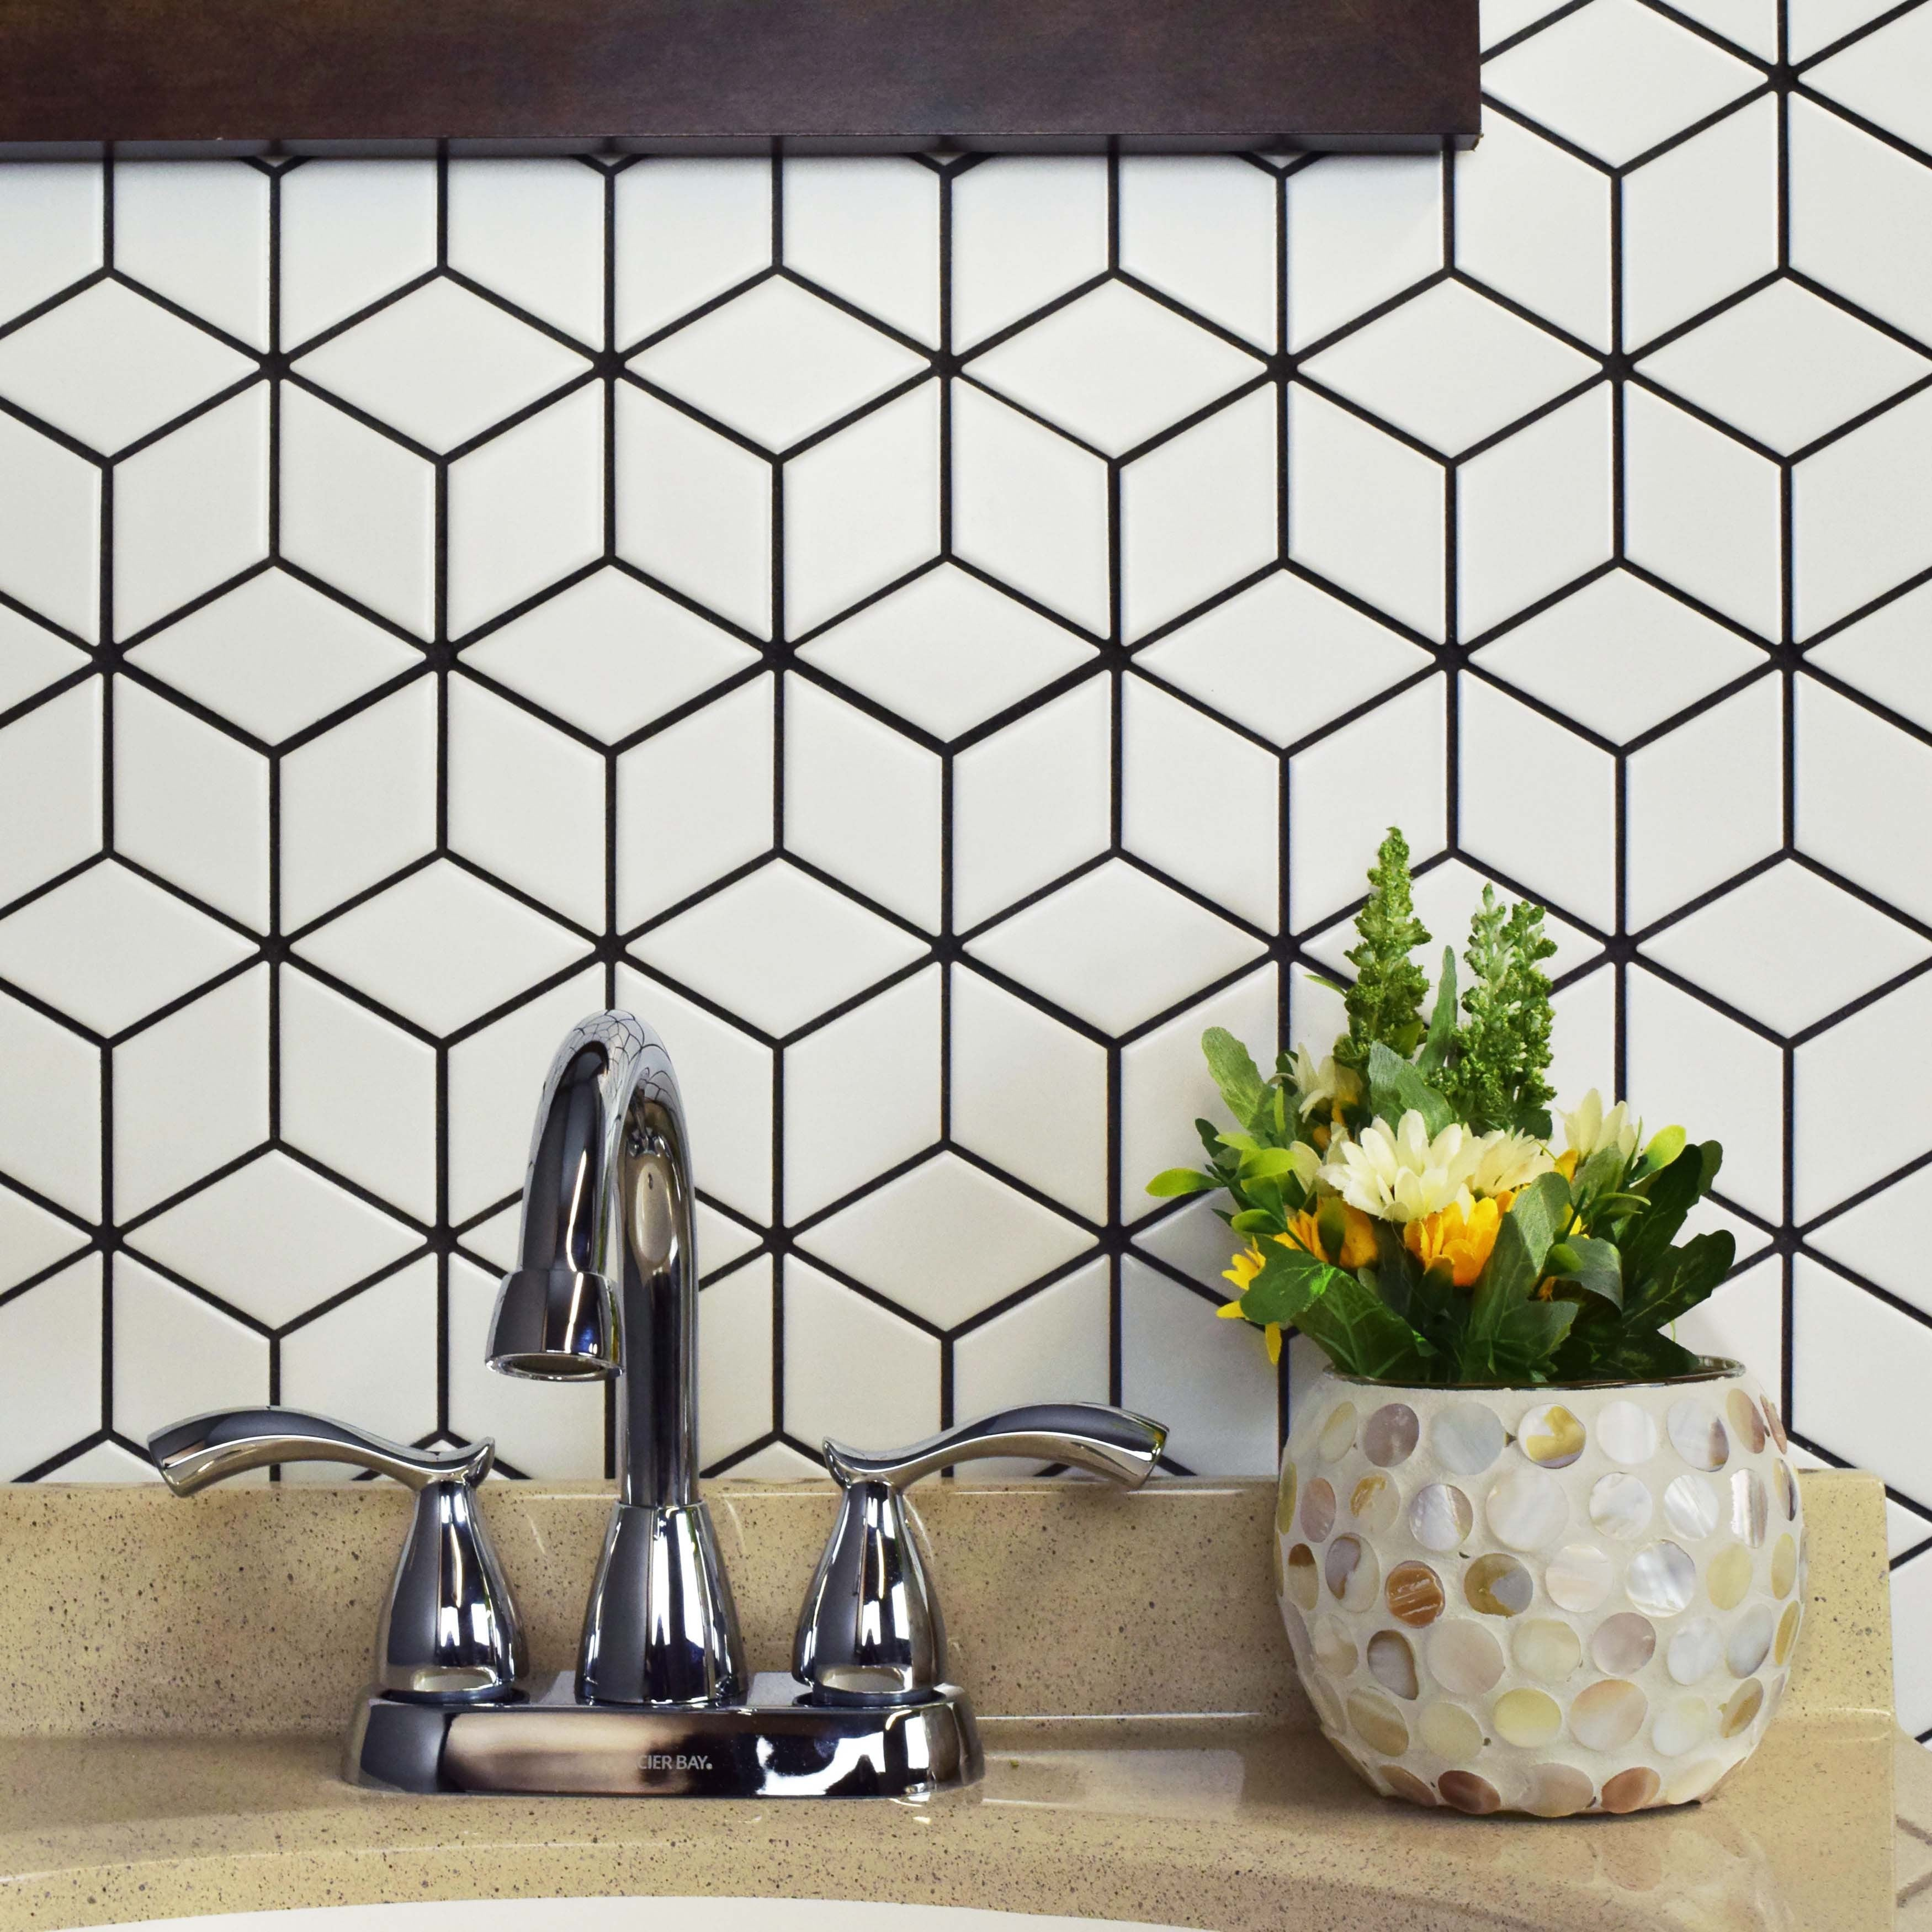 Somertile 105x12125 inch victorian rhombus matte white porcelain somertile 105x12125 inch victorian rhombus matte white porcelain mosaic floor and wall tile 10ca free shipping today overstock 20493683 dailygadgetfo Gallery